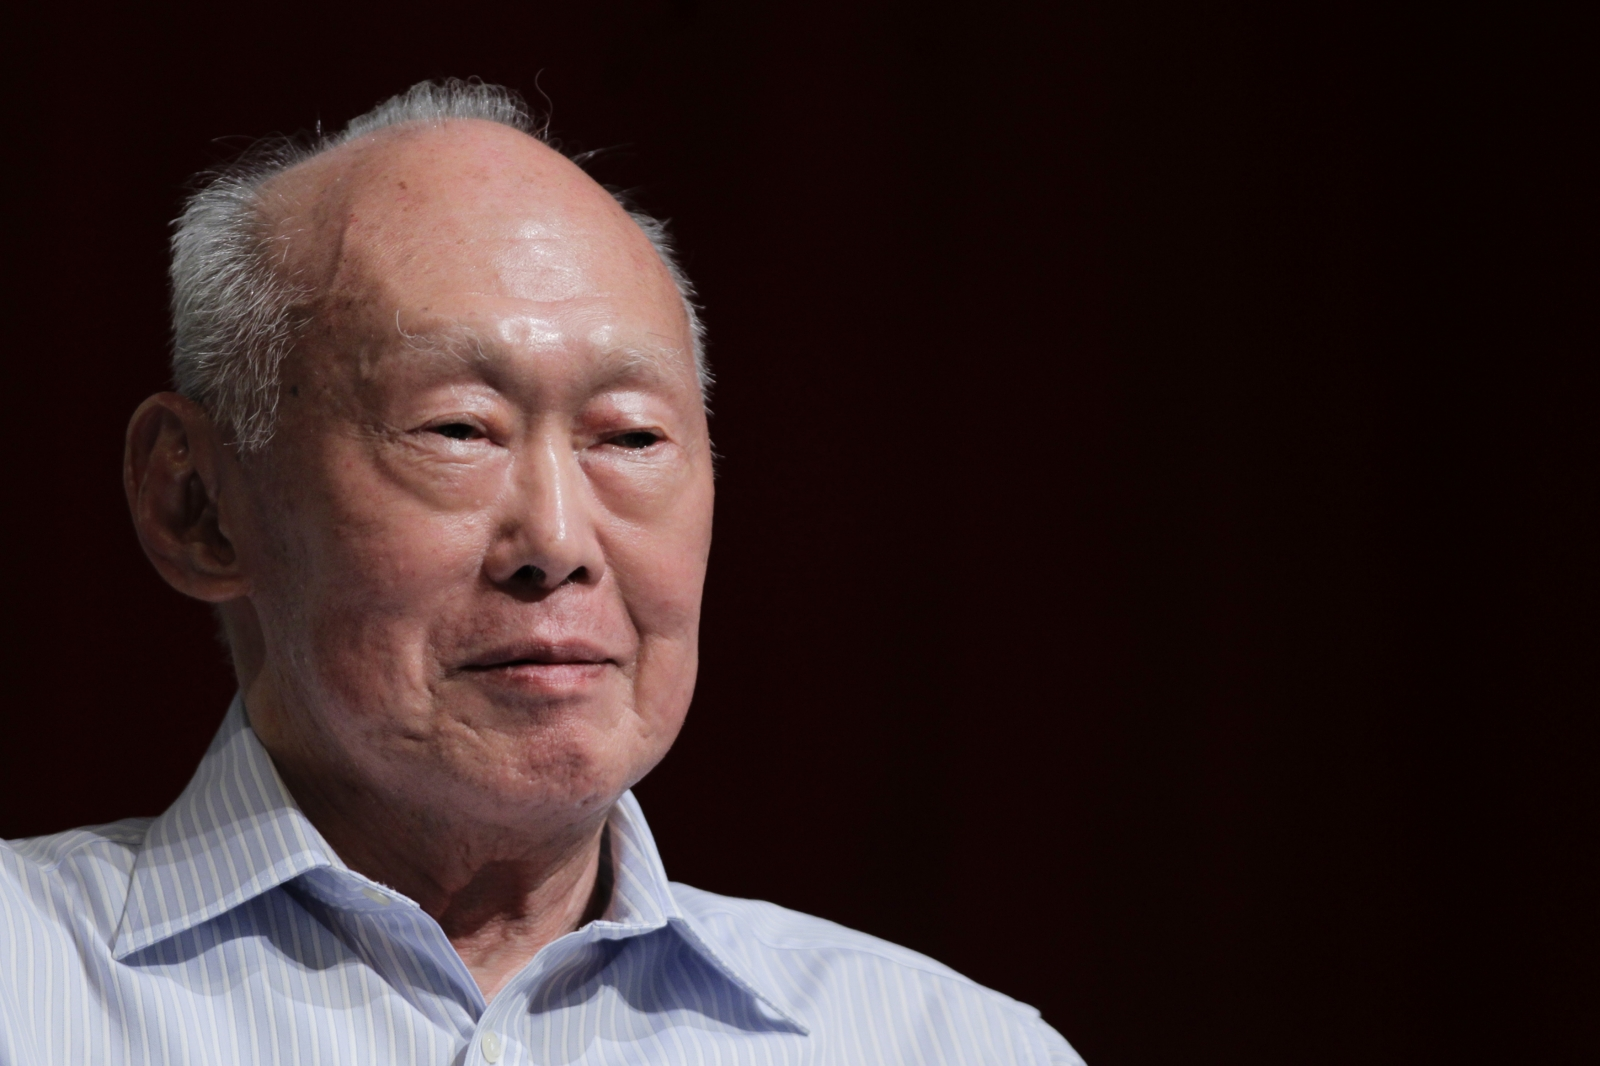 harry lee kuan yew Harry lee kuan yew has passed on he leaves us just as singaporeans are finally falling out of love with his people's action party, as i blogged after visiting singapore last october it is a pretty good record for someone who started out in politics in the 1950s.